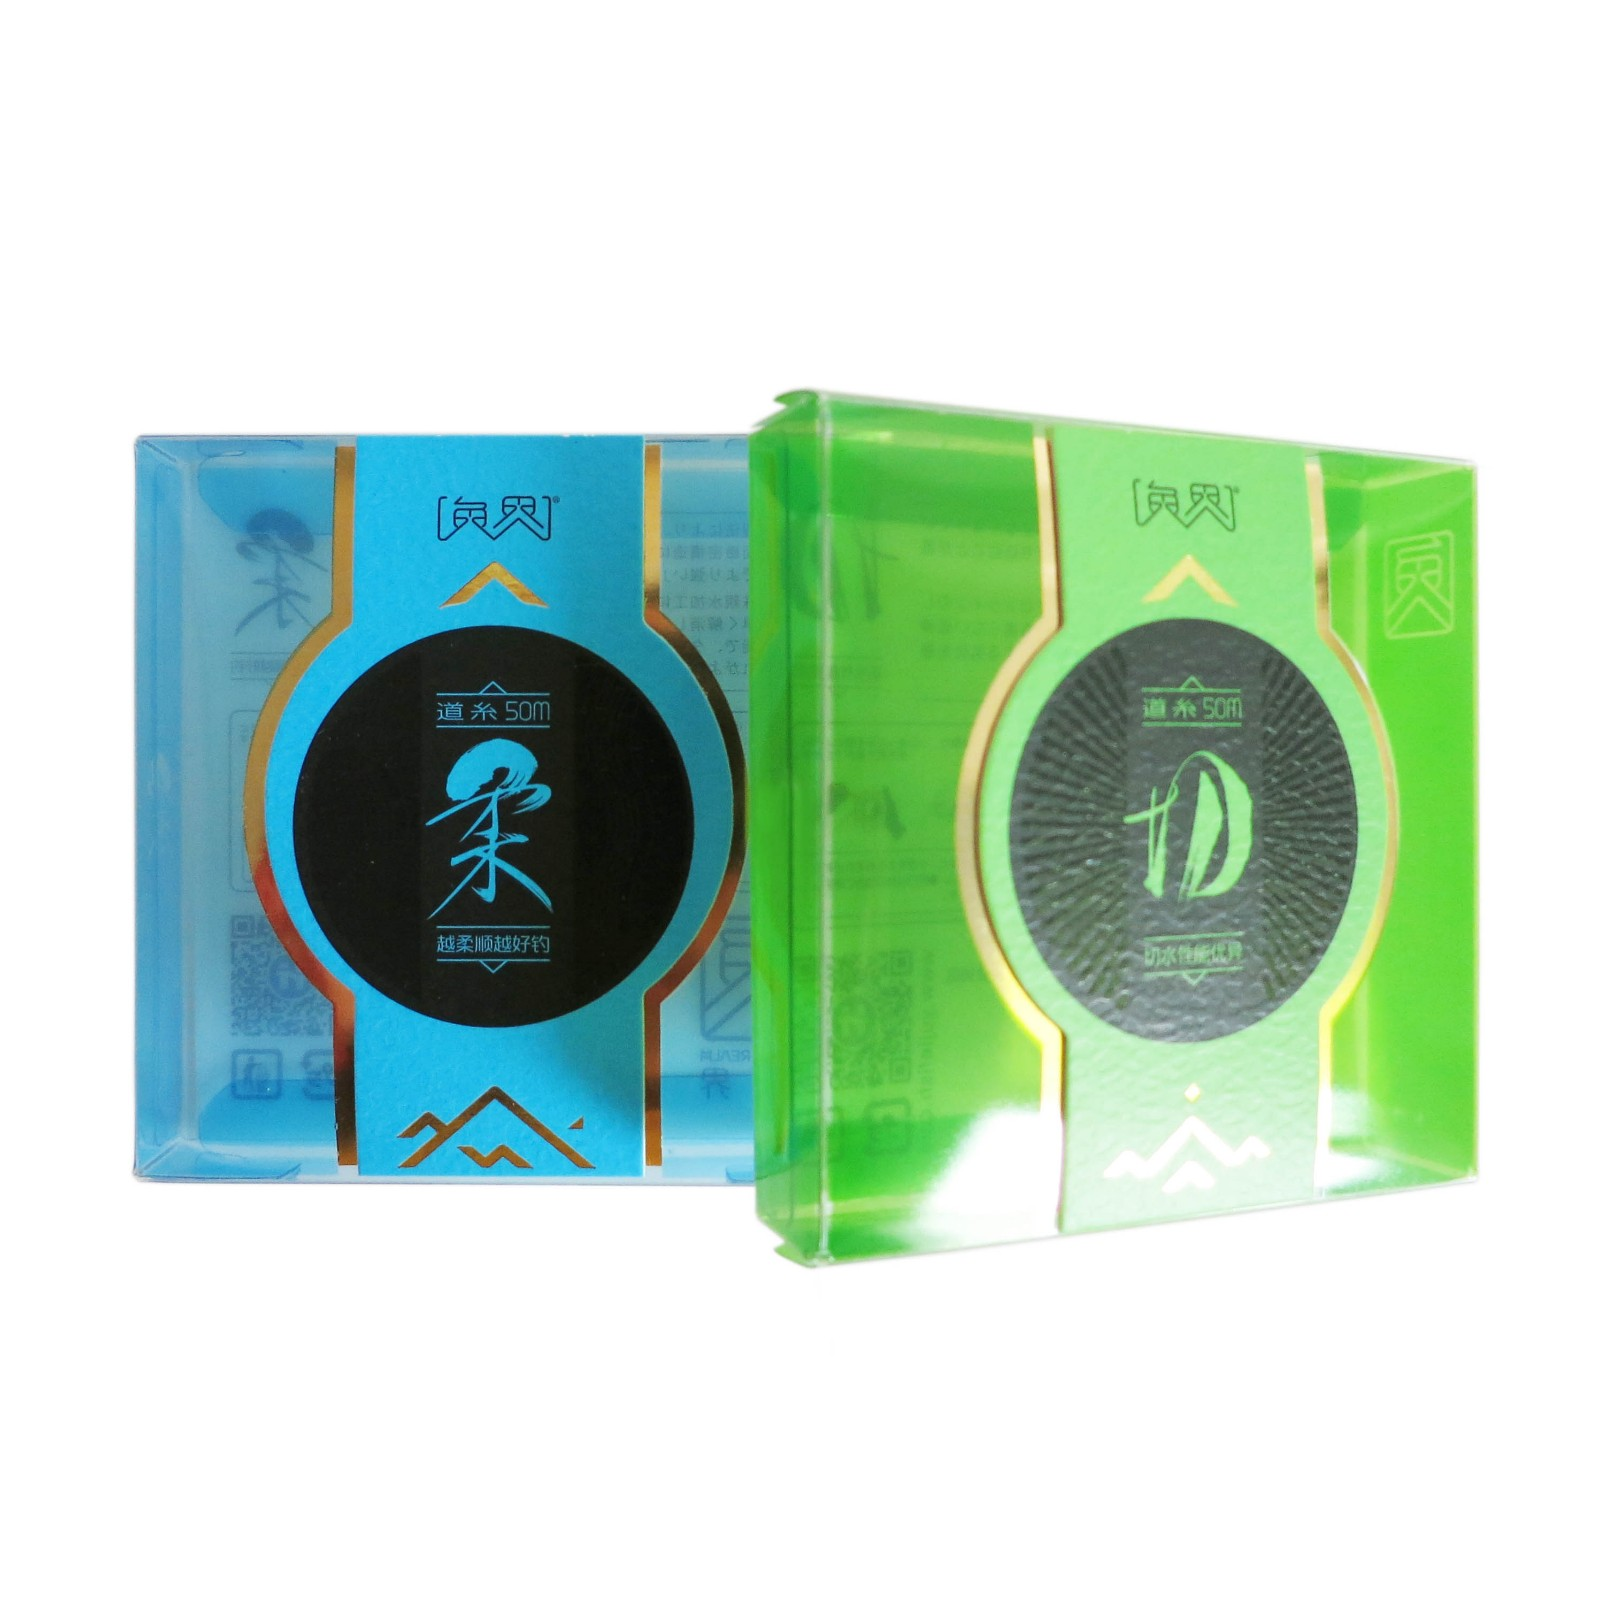 Yijianxing Plastic Products metallic blister packaging order now for gift-2